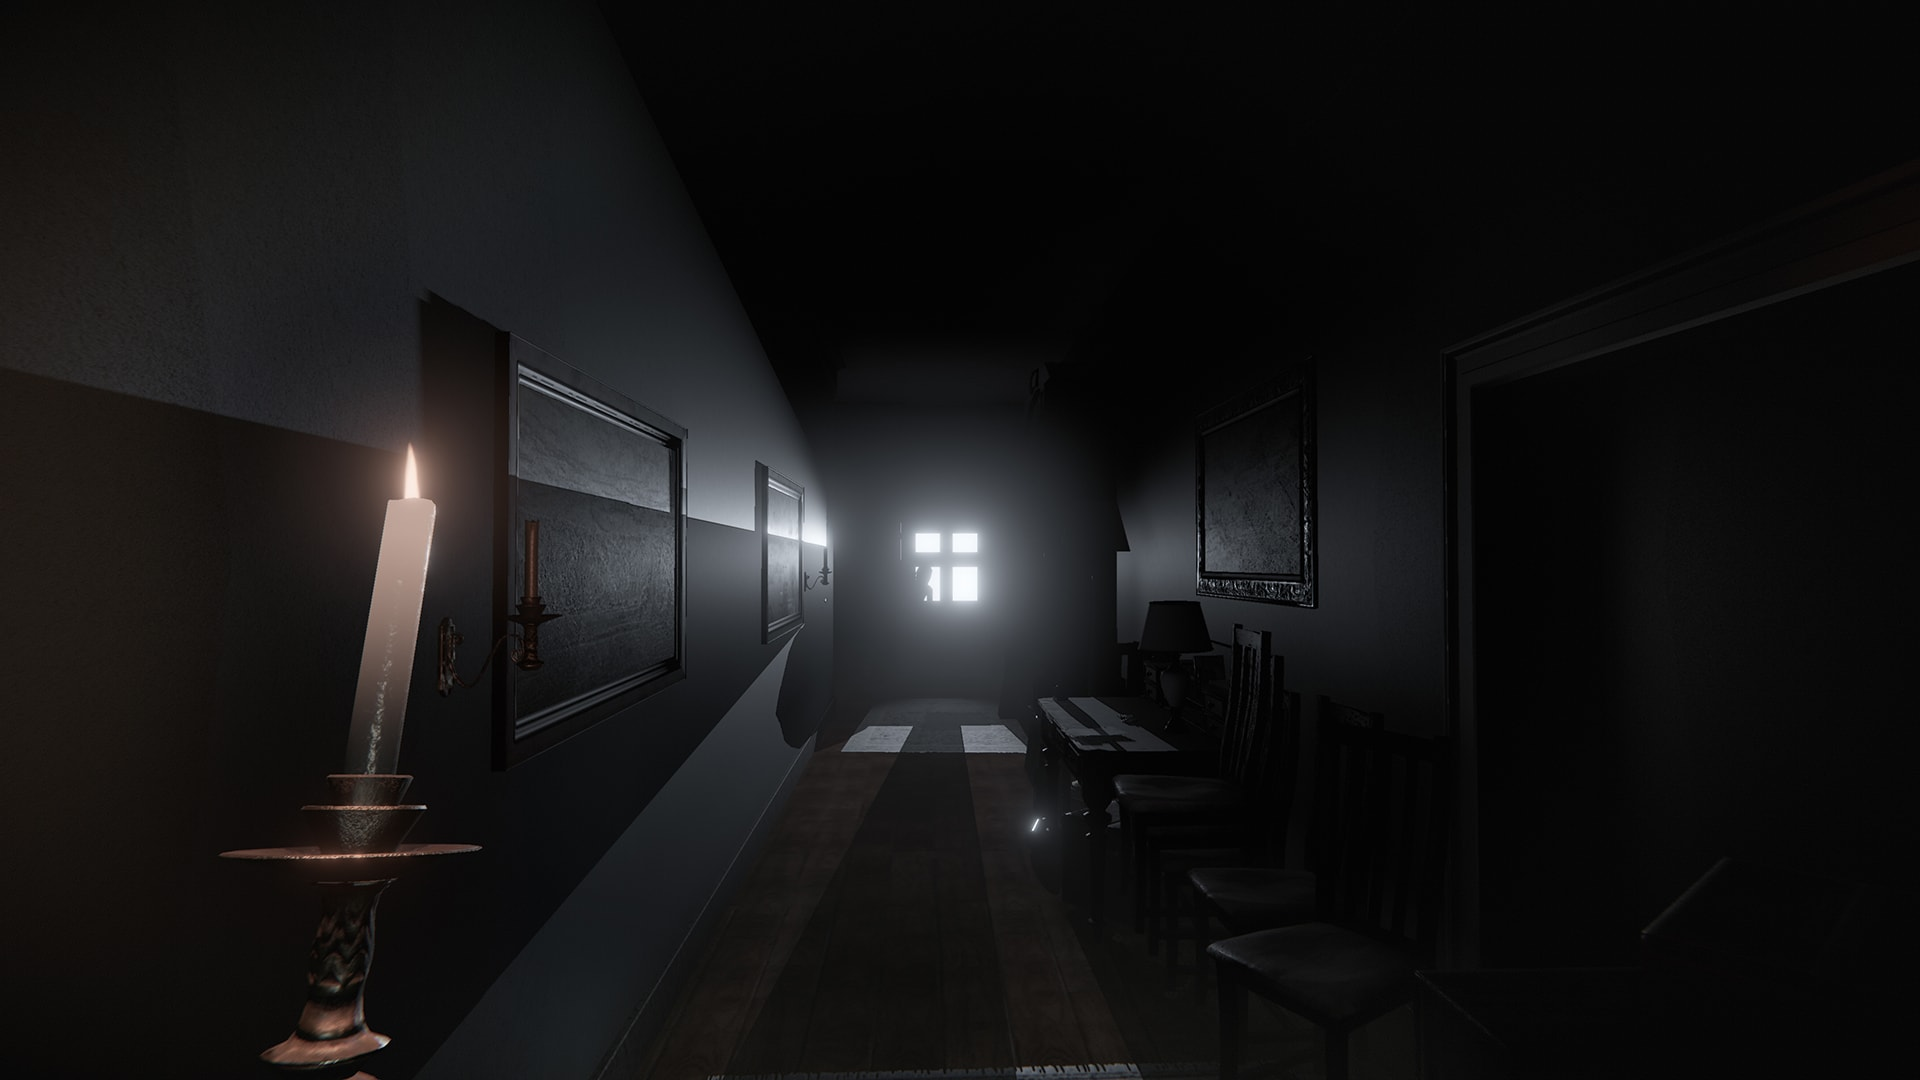 Don't Knock Twice Arriving on Switch This Month